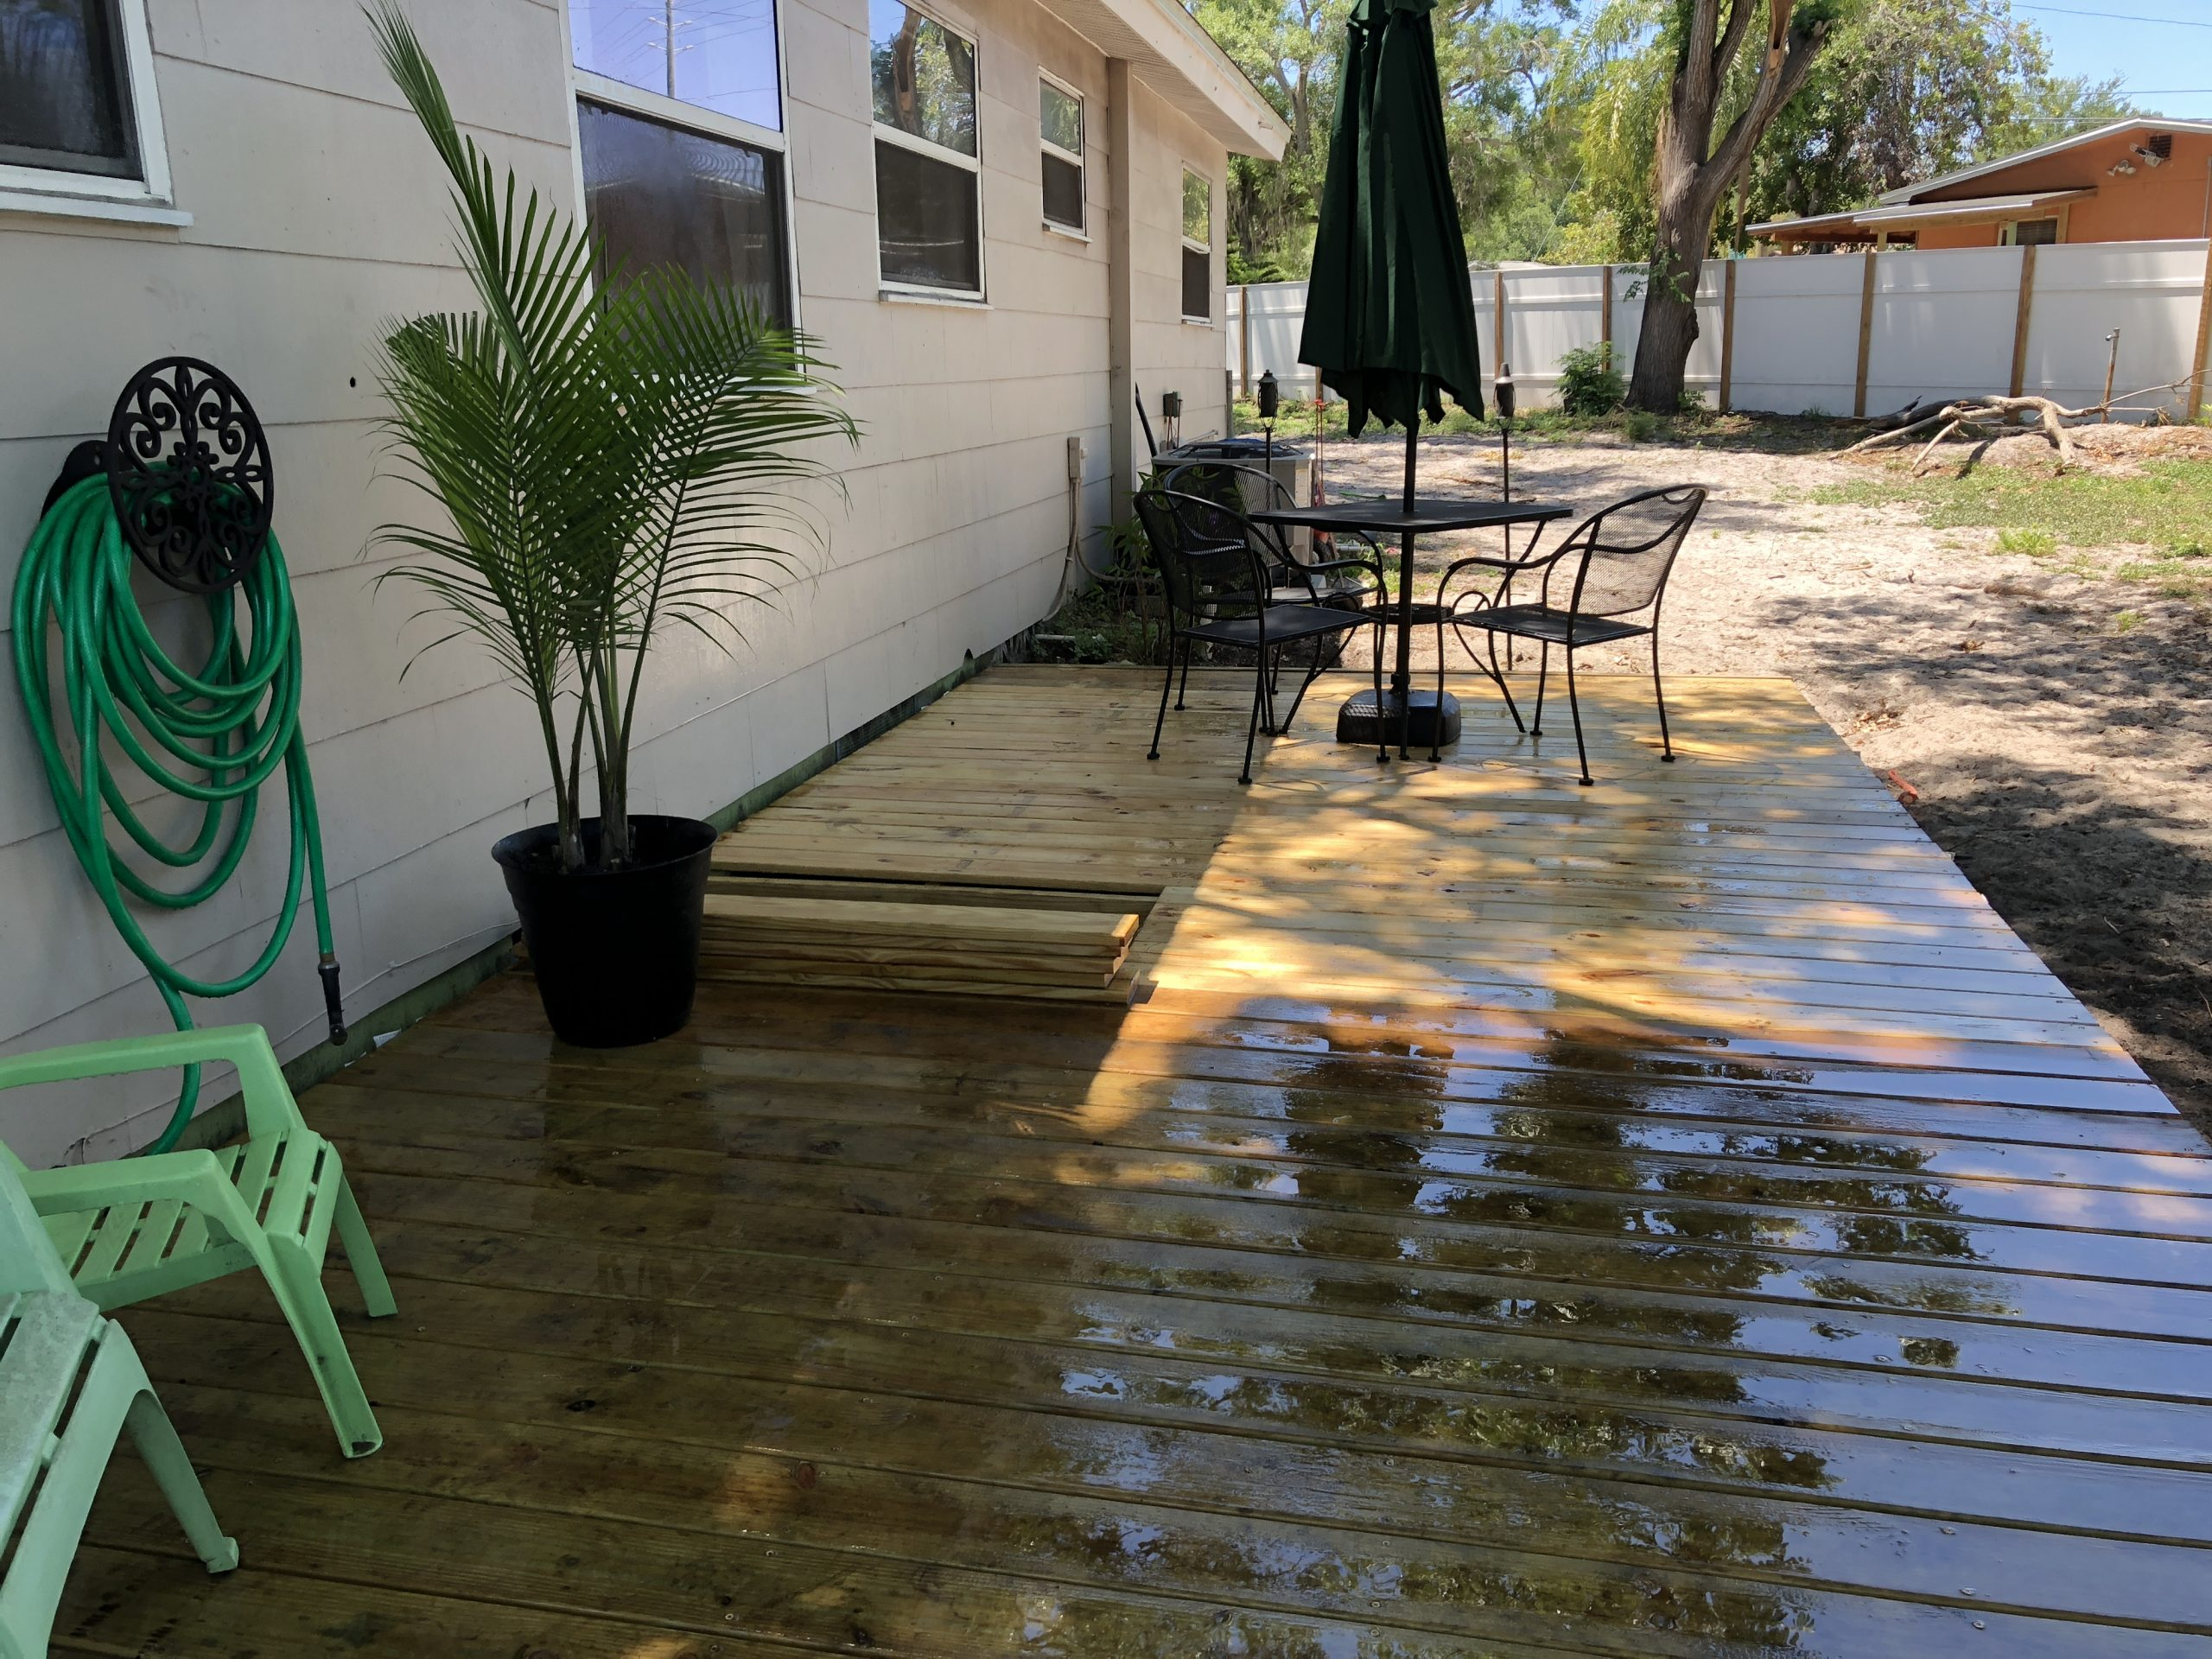 I built a 10'x22' floating deck BY MYSELF for less than $500